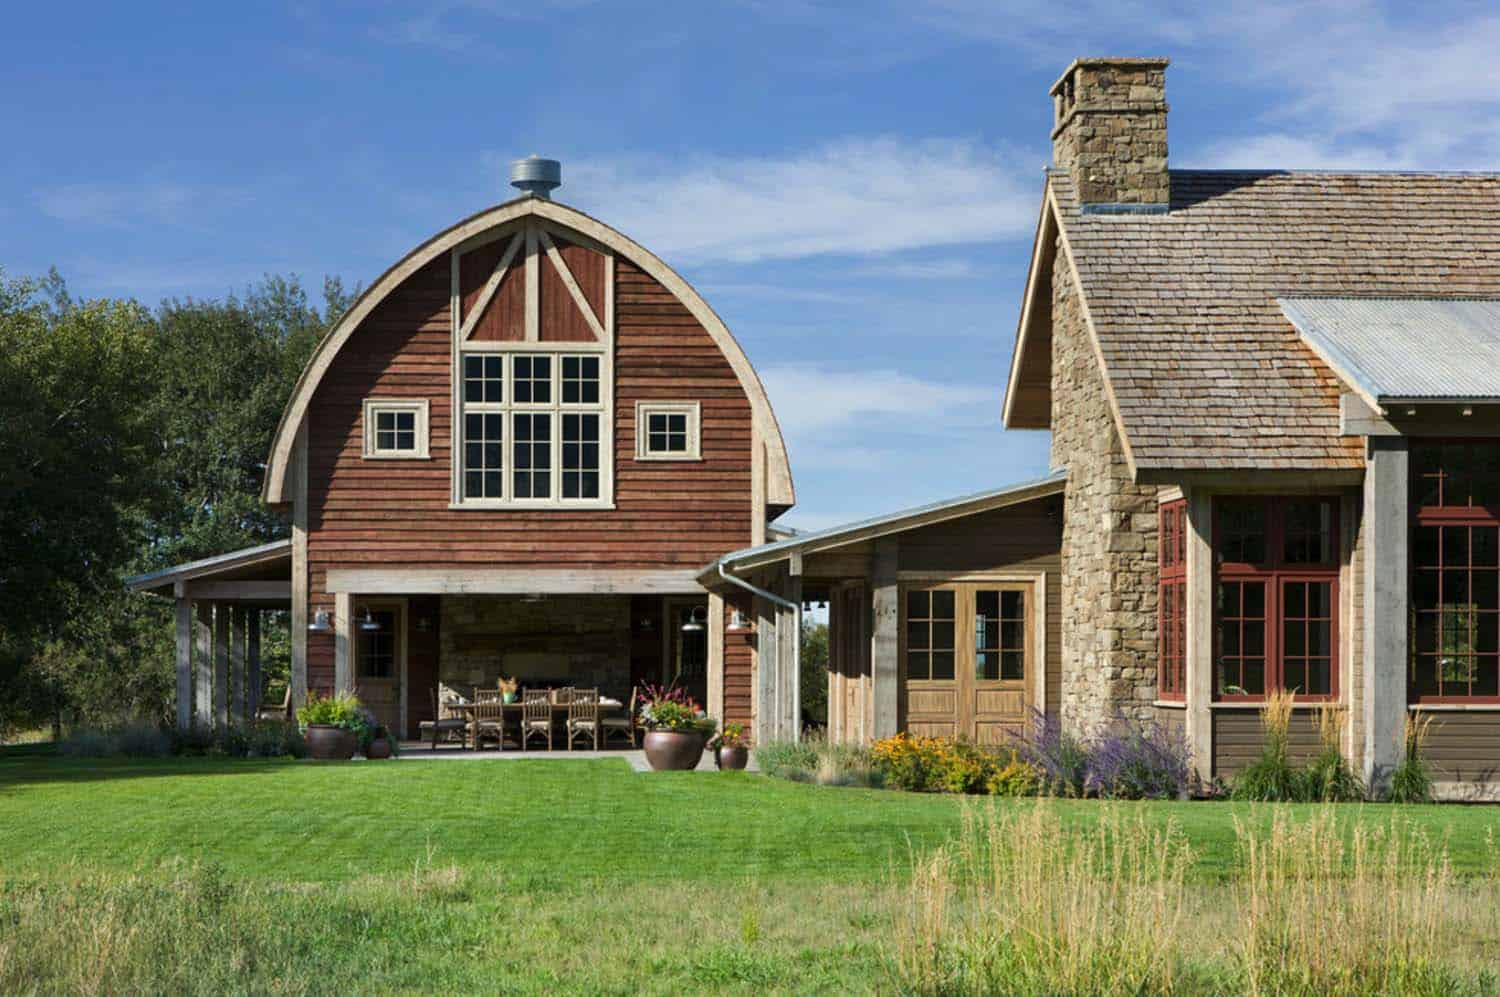 Picturesque Montana Farmhouse With An Attached Barn Interiors Inside Ideas Interiors design about Everything [magnanprojects.com]